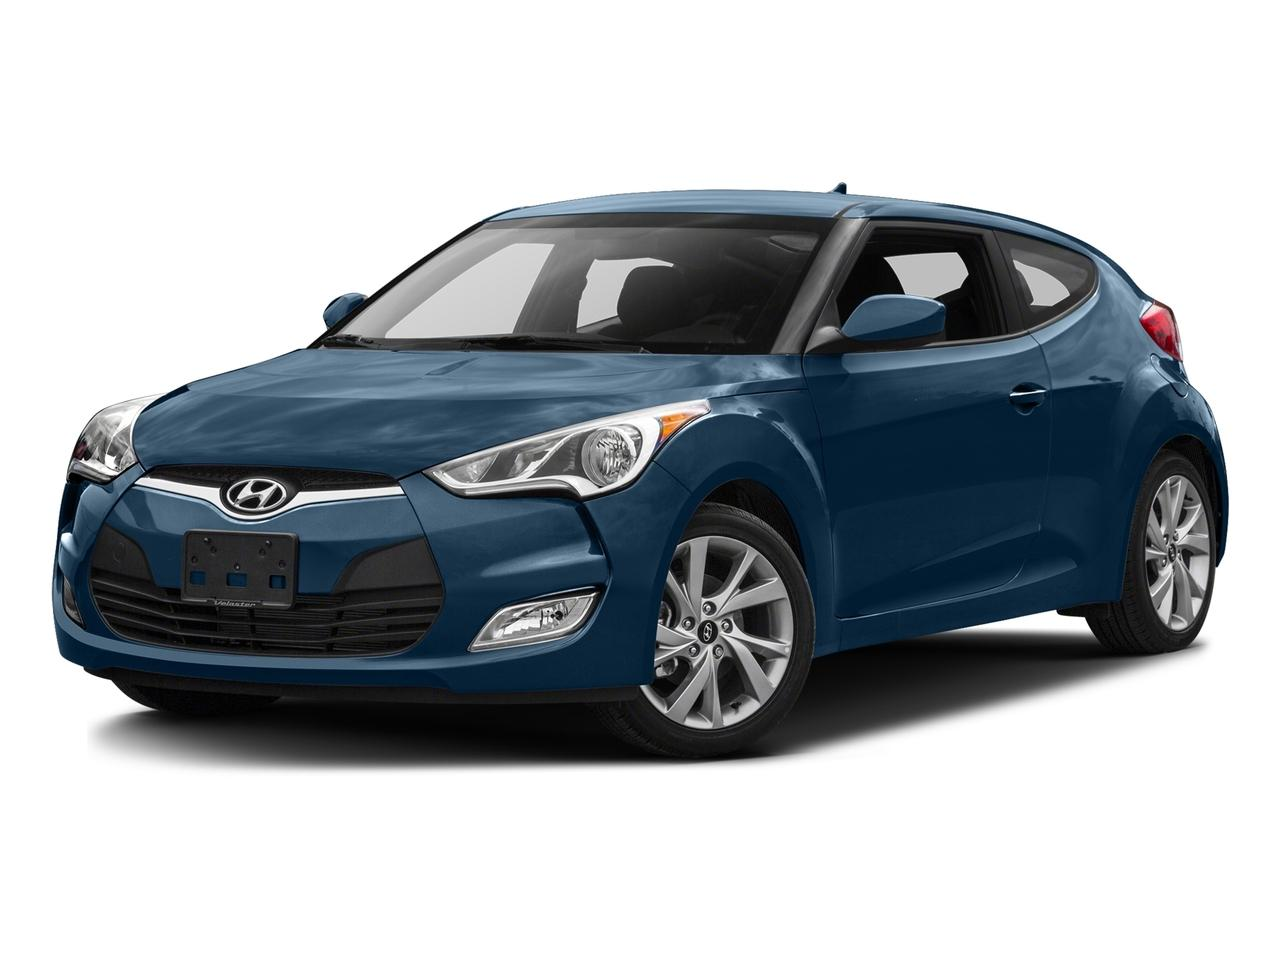 2017 Hyundai Veloster Vehicle Photo in Tucson, AZ 85712